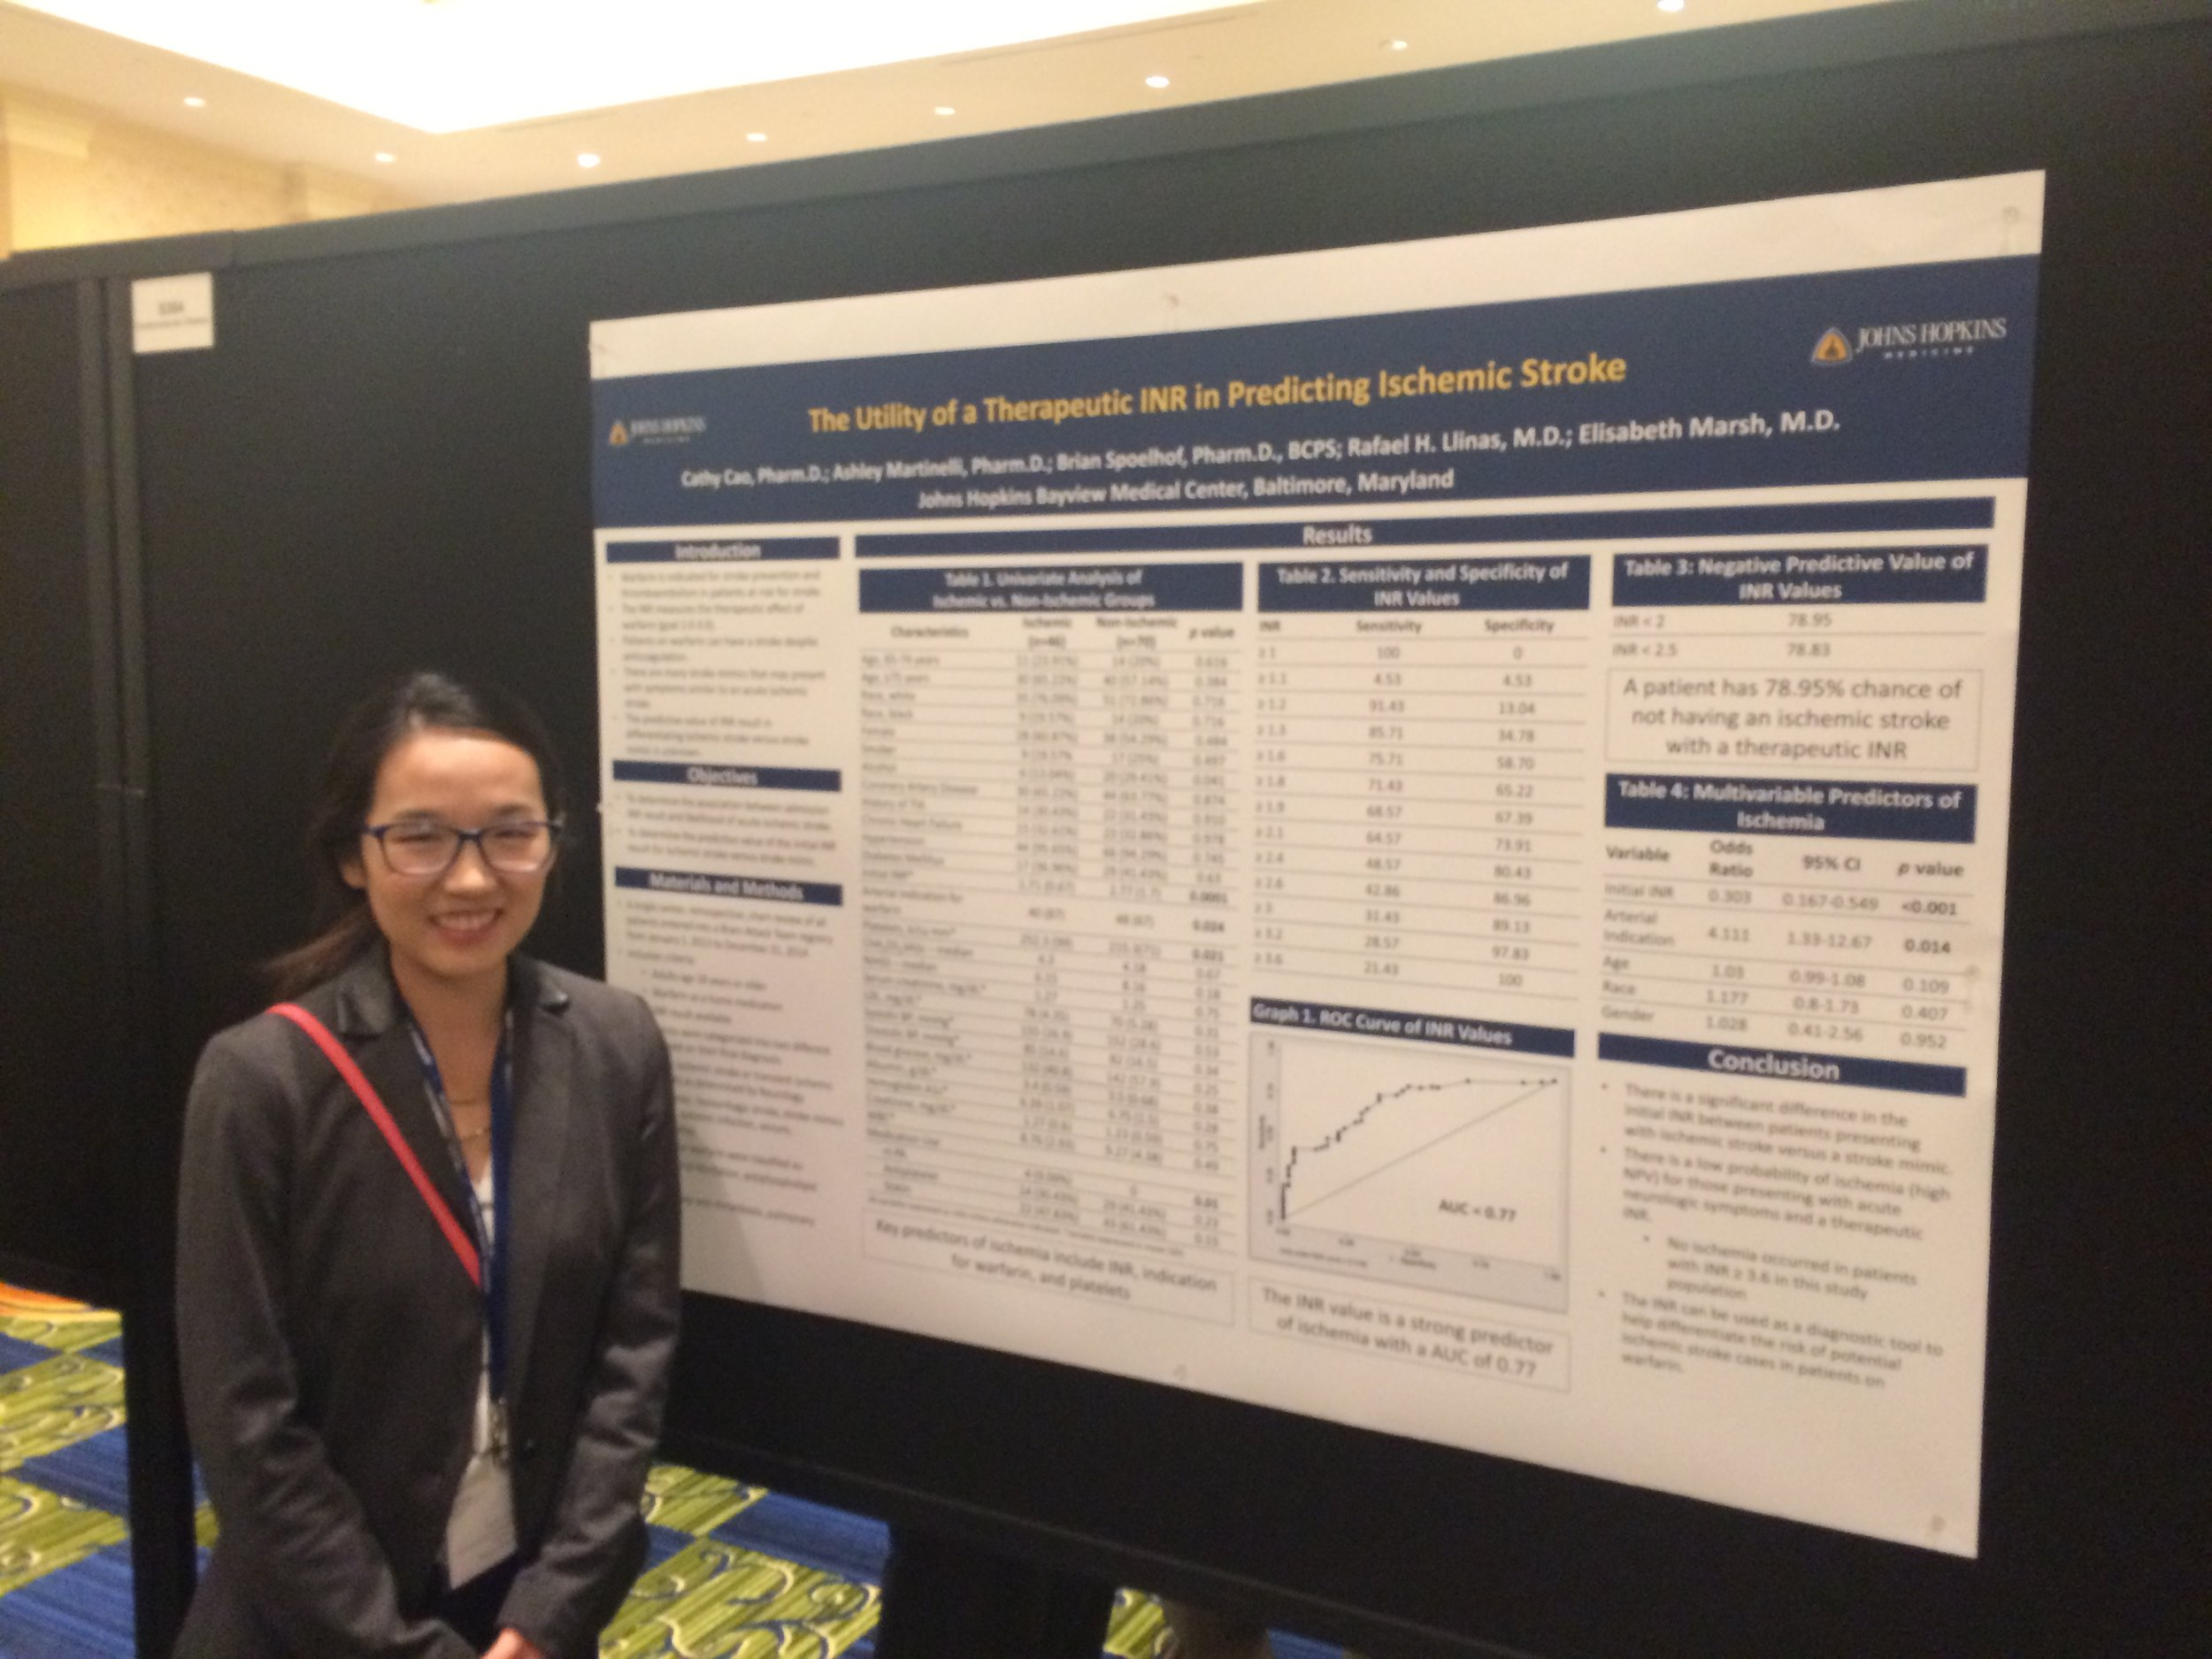 Cathy Cao giving her poster presentation at the 2016 American Neurological Association Annual Meeting in Baltimore.